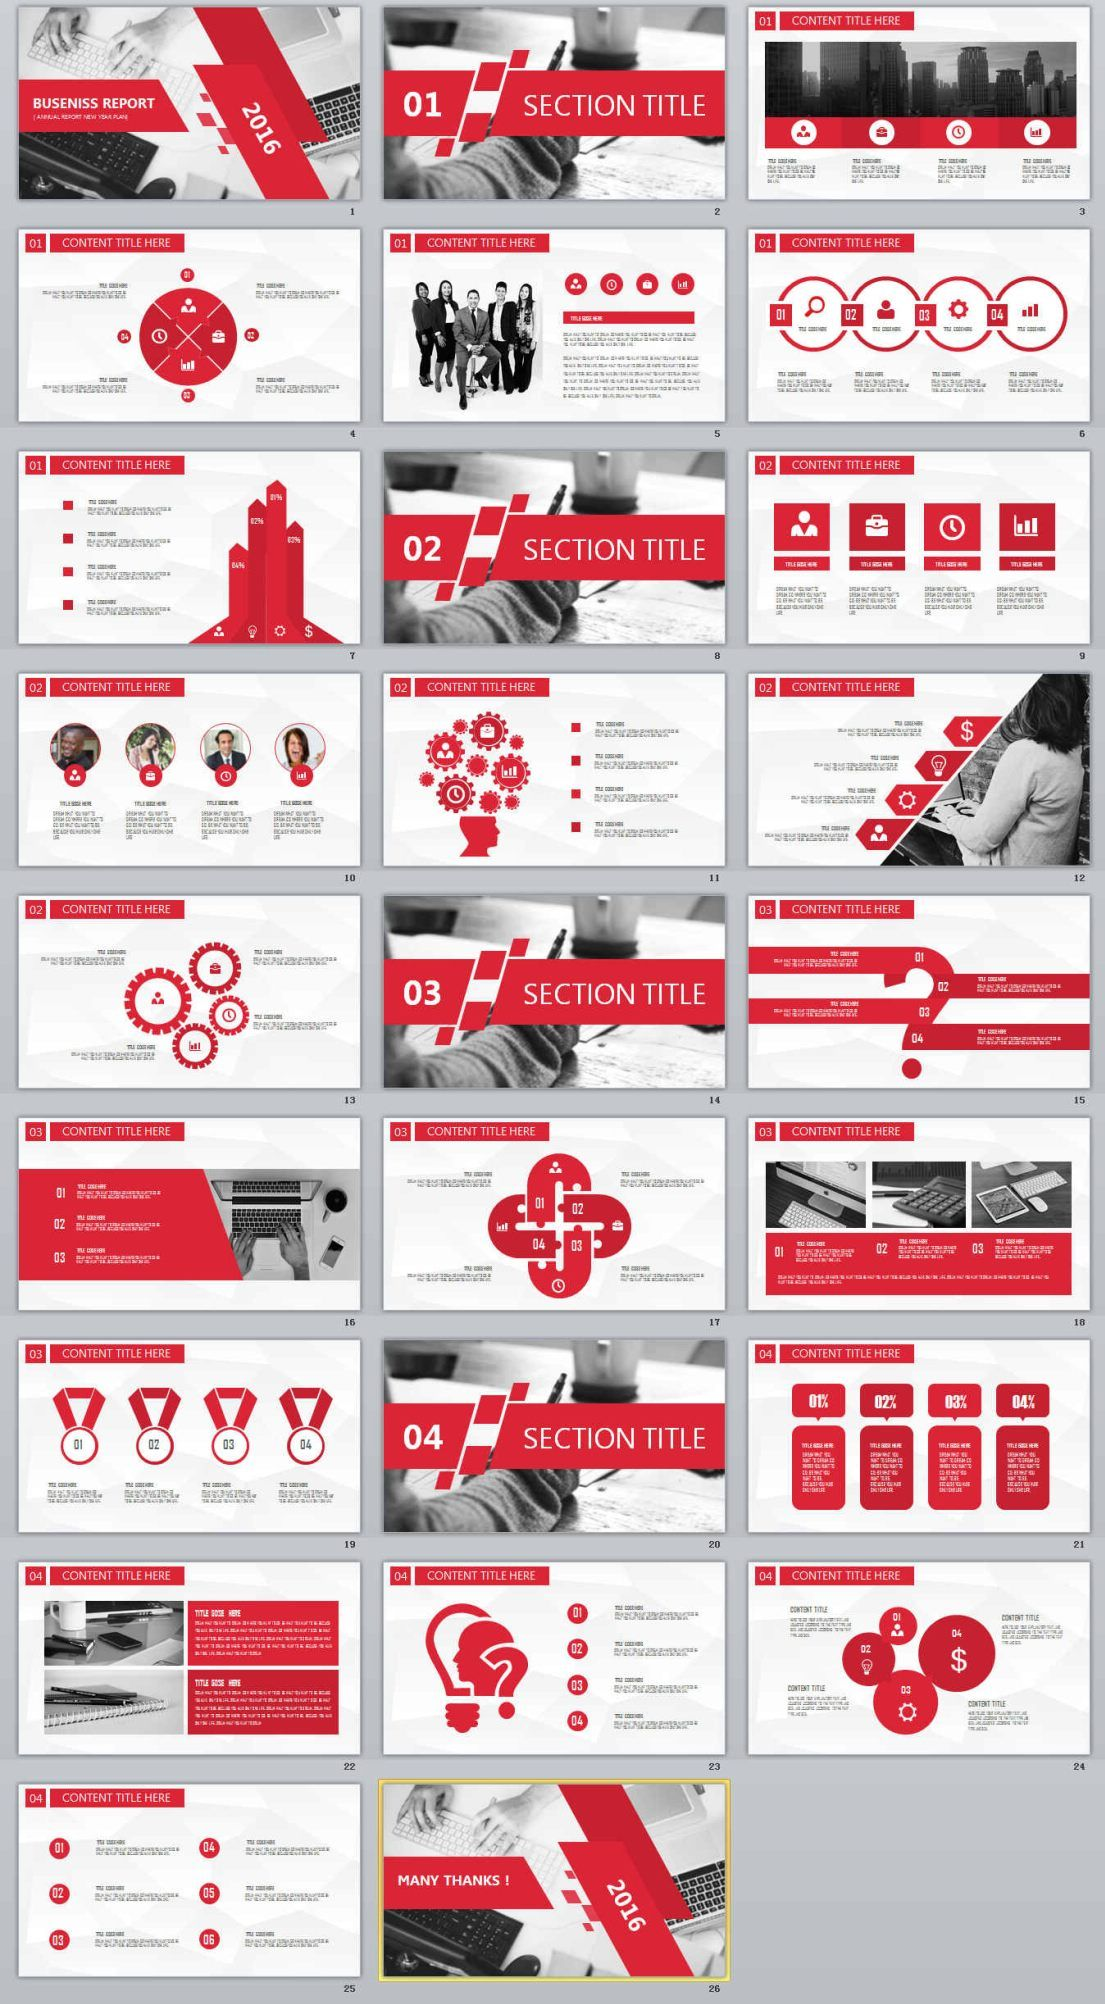 26 redcolor business report powerpoint templates the highest